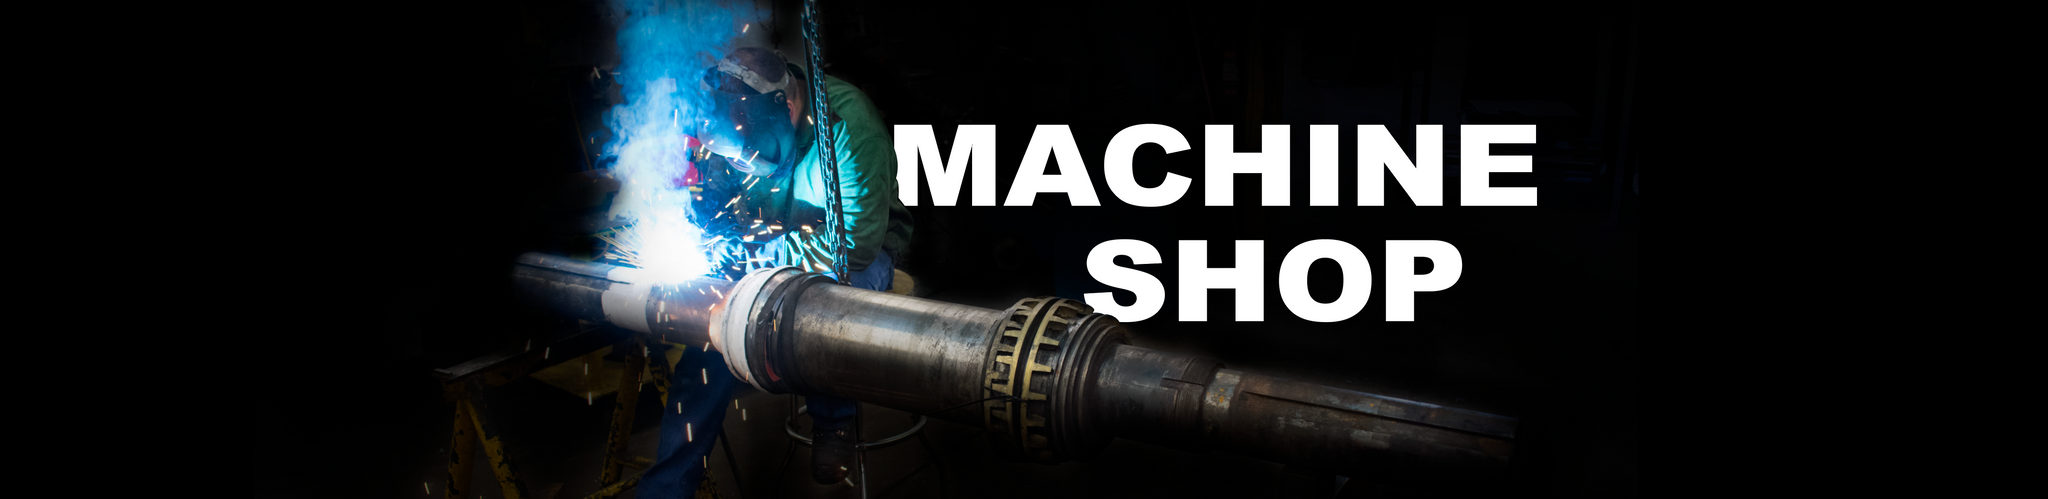 Machine Shop, Welding, Repair Work